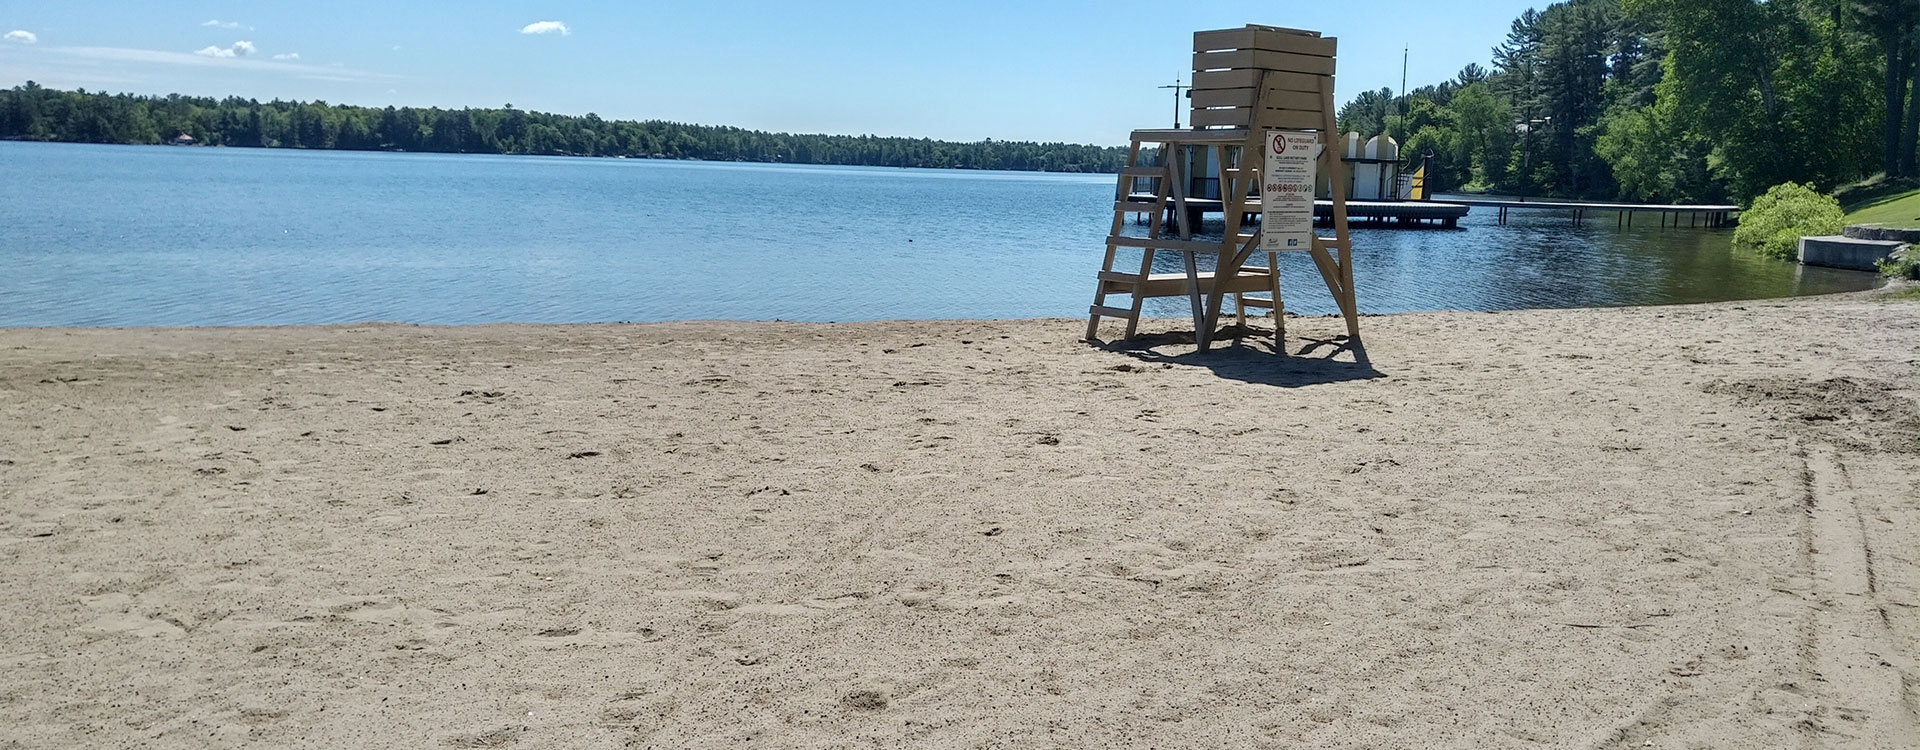 Gull Lake Park, Beach, Swimming area